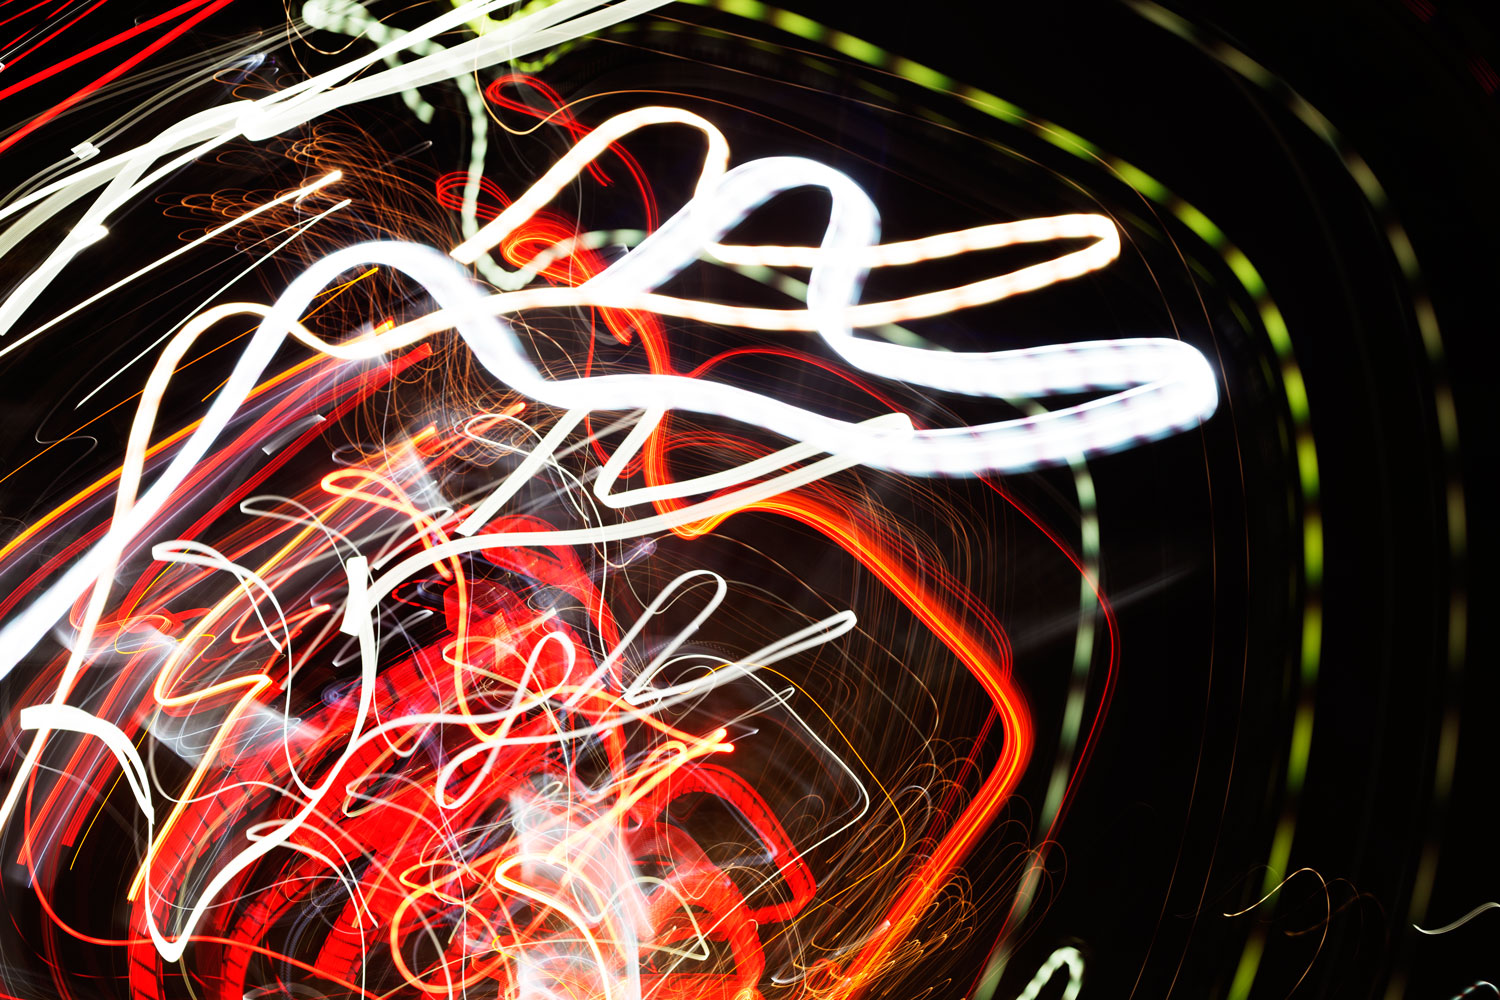 Image: Taken over two seconds at f/4 and ISO 100, this tangle of lights demonstrates the path of the...